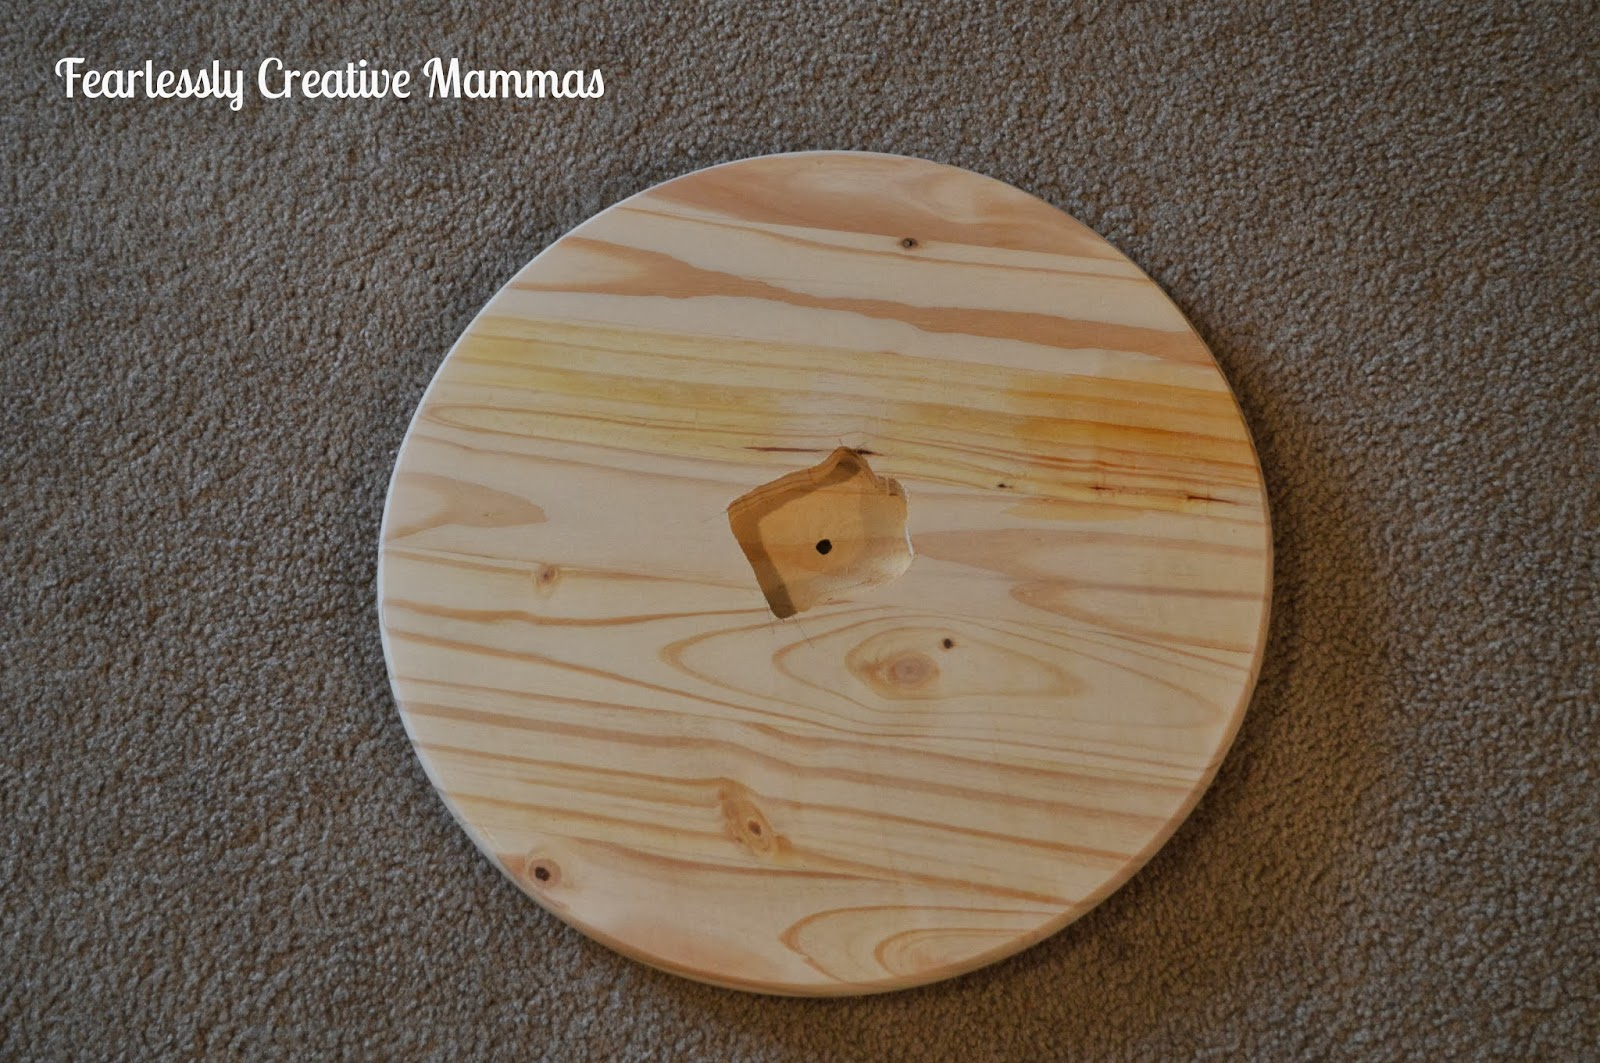 Diy wall clocks fearlessly creative mammas for Whatever clock diy